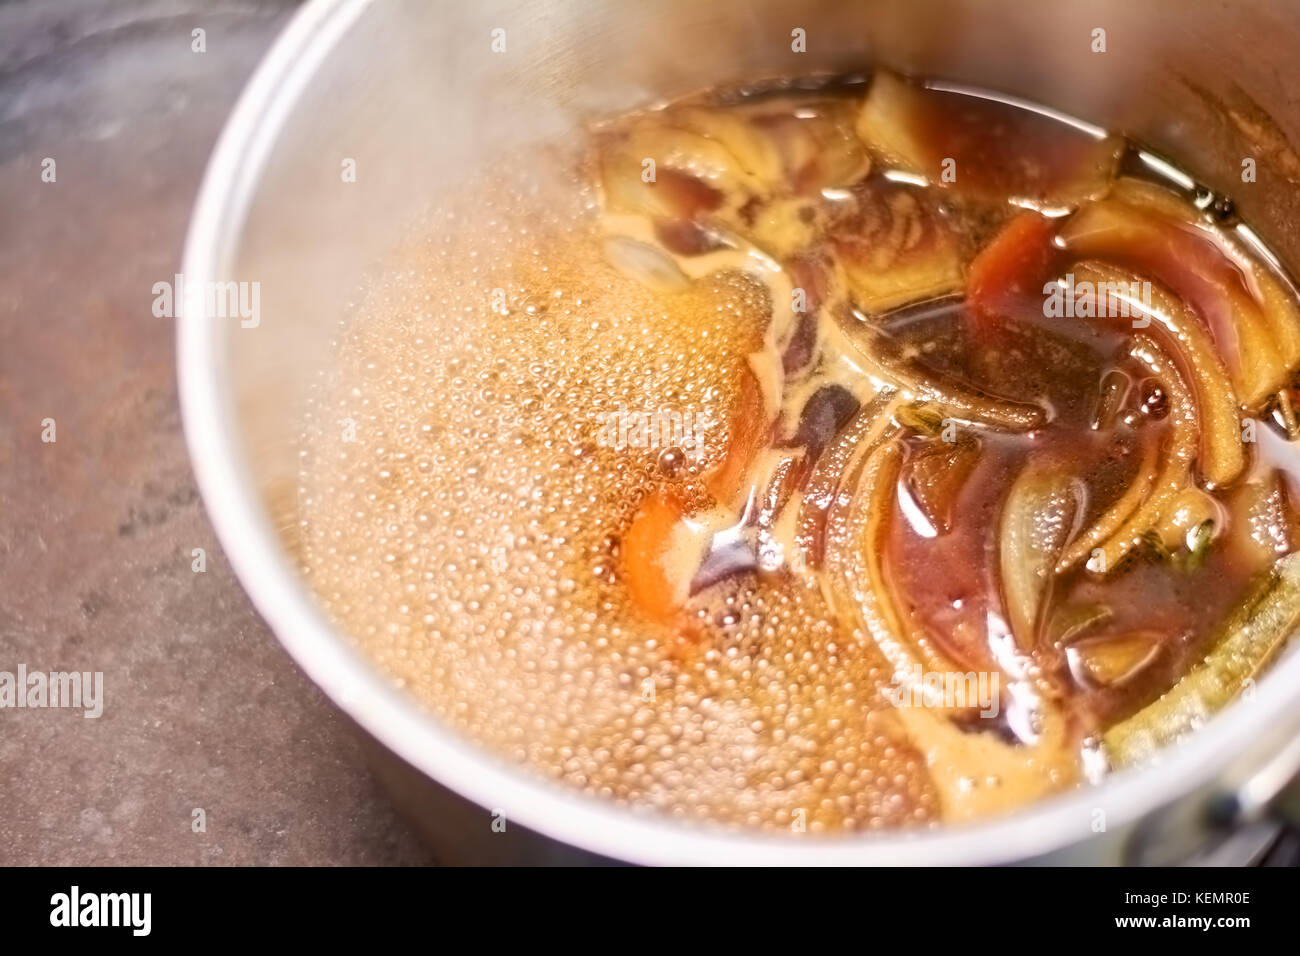 Flavor shank of lamb boiling in saucepan. Slow cooked leg of lamb with broth in casserole close up. Delicious food - Stock Image